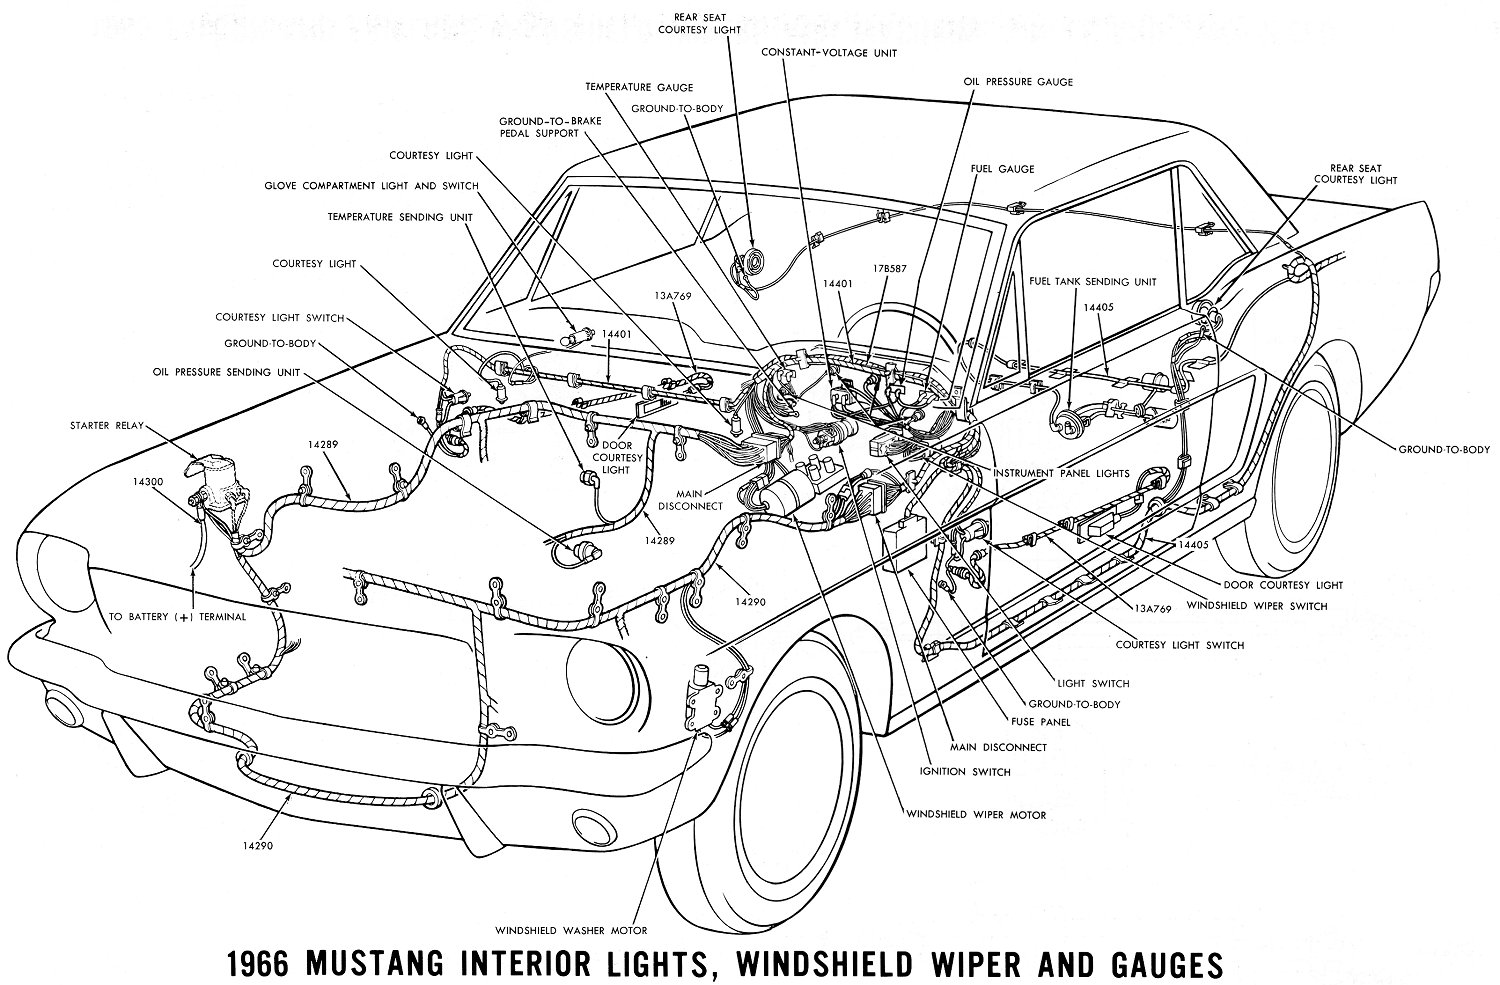 1966 mustang wiring diagrams average joe restoration 1935 ford ignition coil wiring diagram 1963 ford ignition coil wiring #17